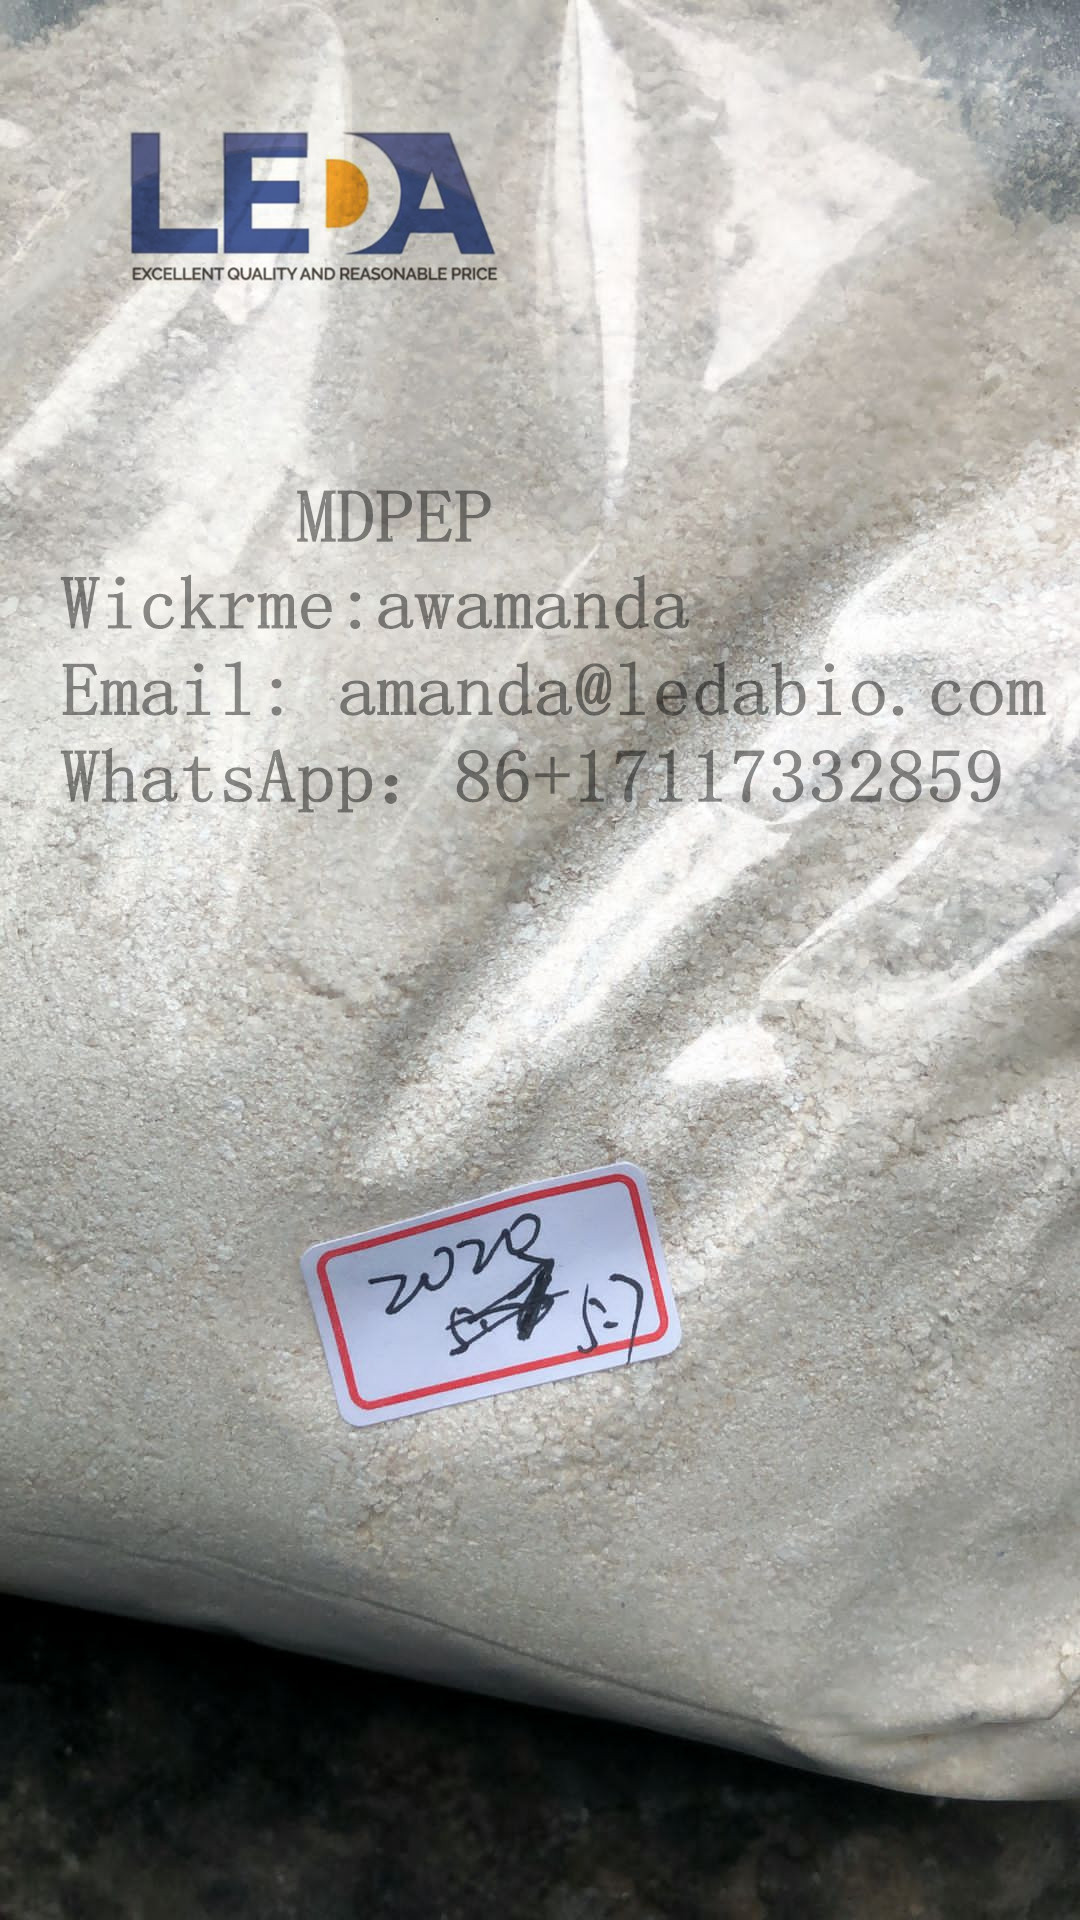 Strongest stimulants MDPEP mfpep apvp with best Factory price Wickrme:awamanda